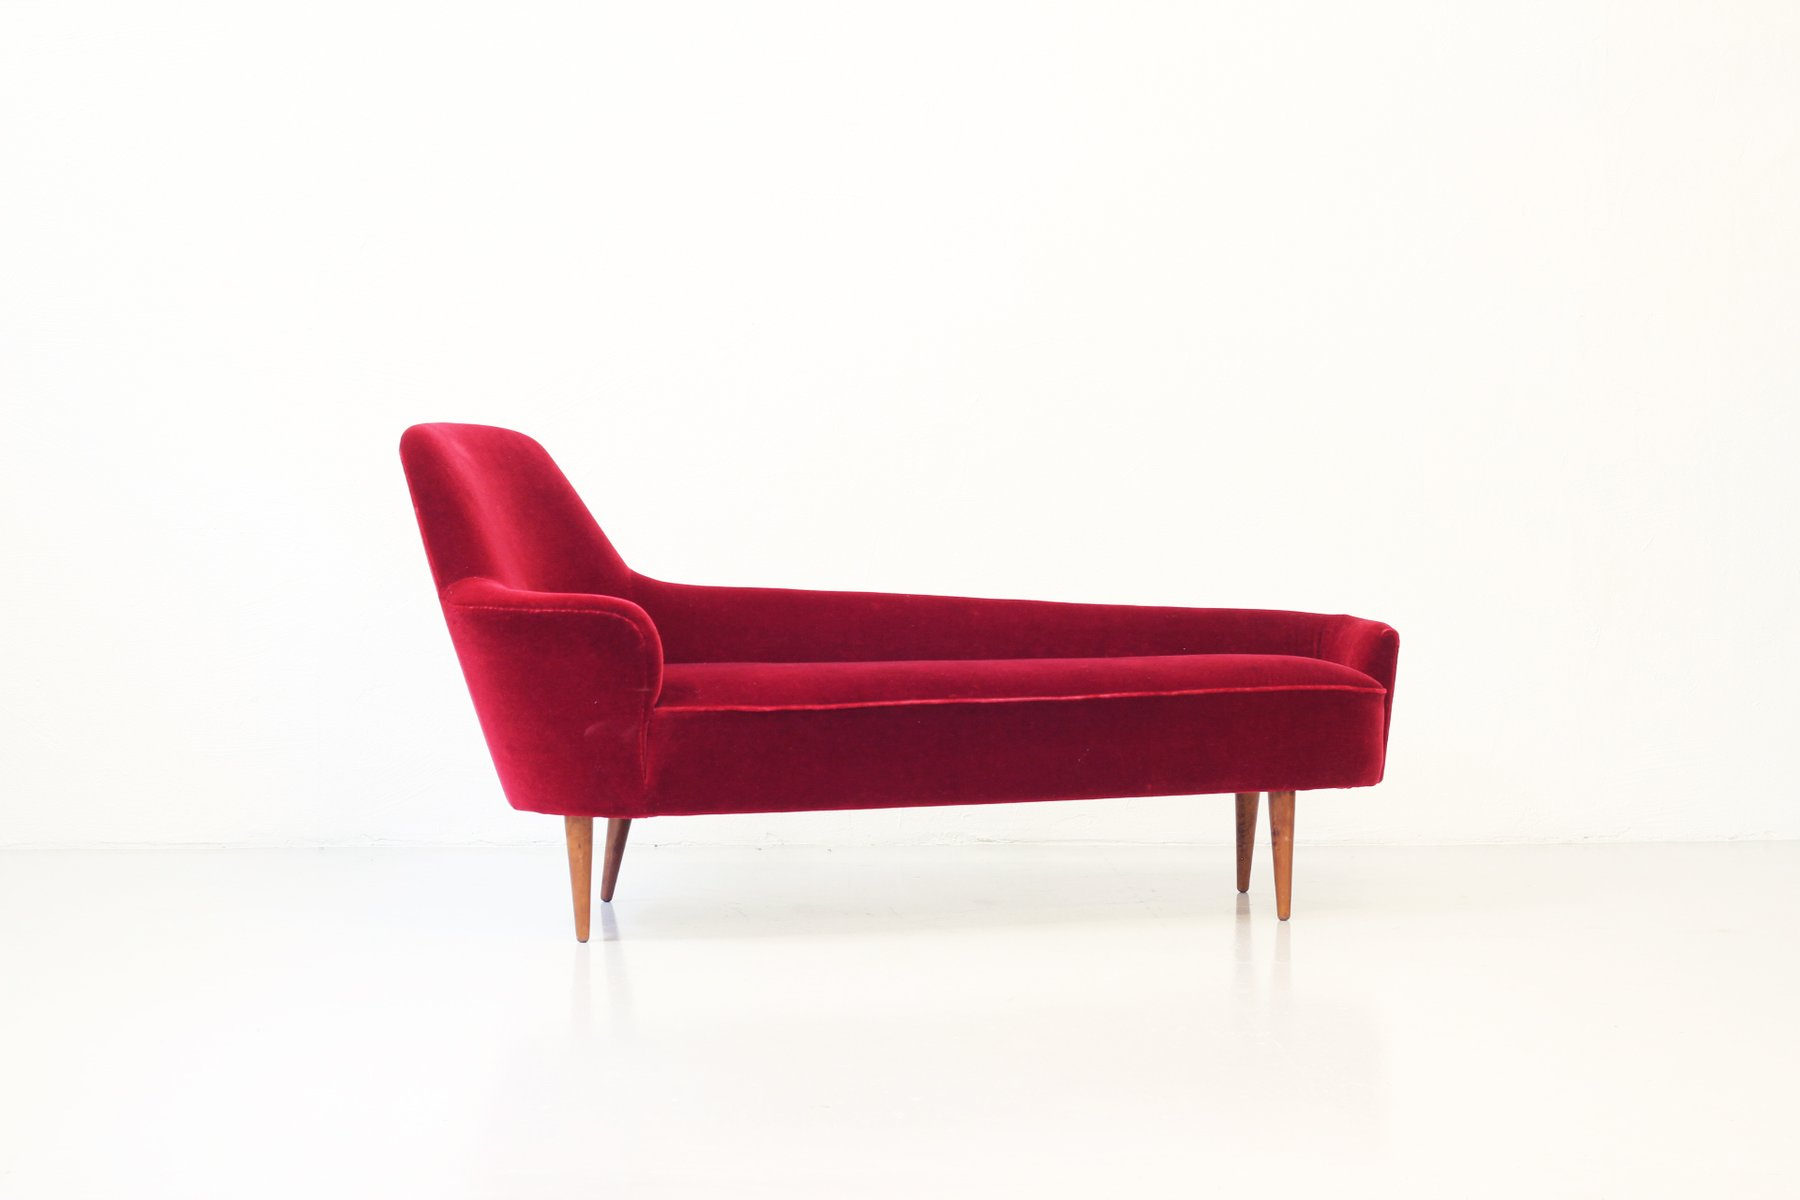 Singoalla chaise lounge by gillis lundgren for ikea 1961 for Chaise longue ikea